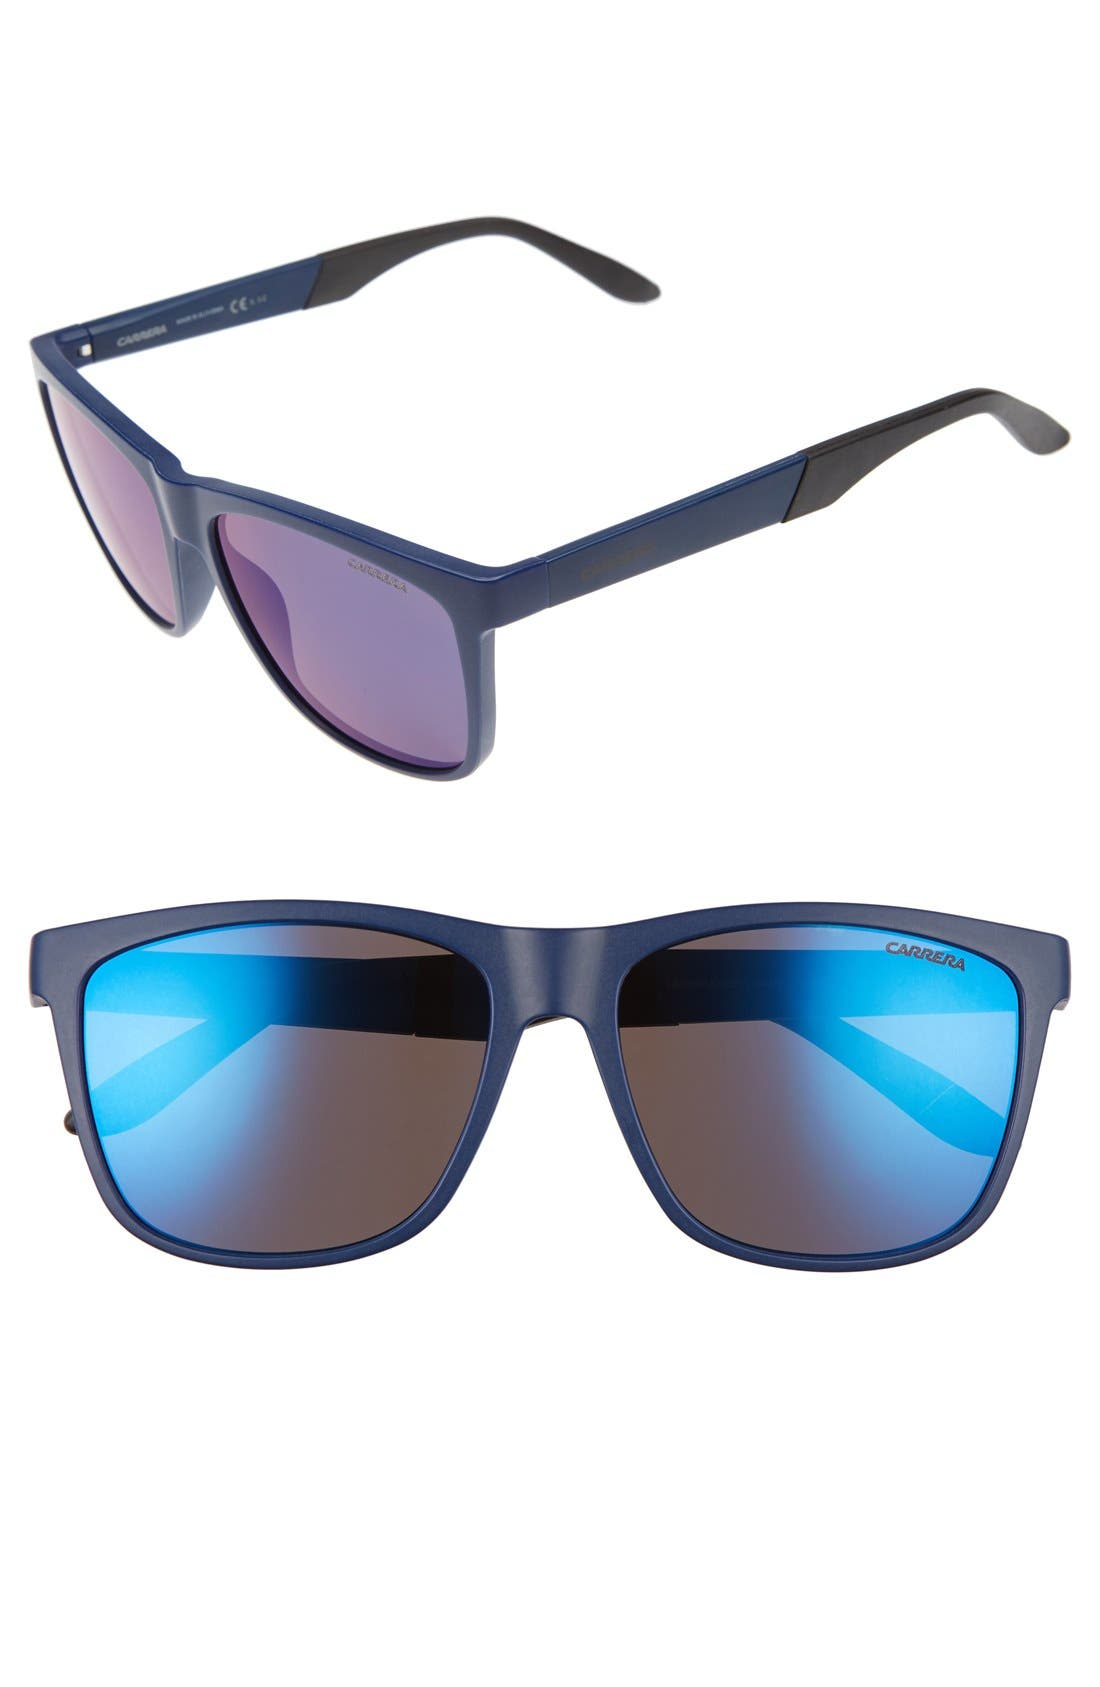 Main Image - Carrera Eyewear 8022/S 56mm Polarized Sunglasses